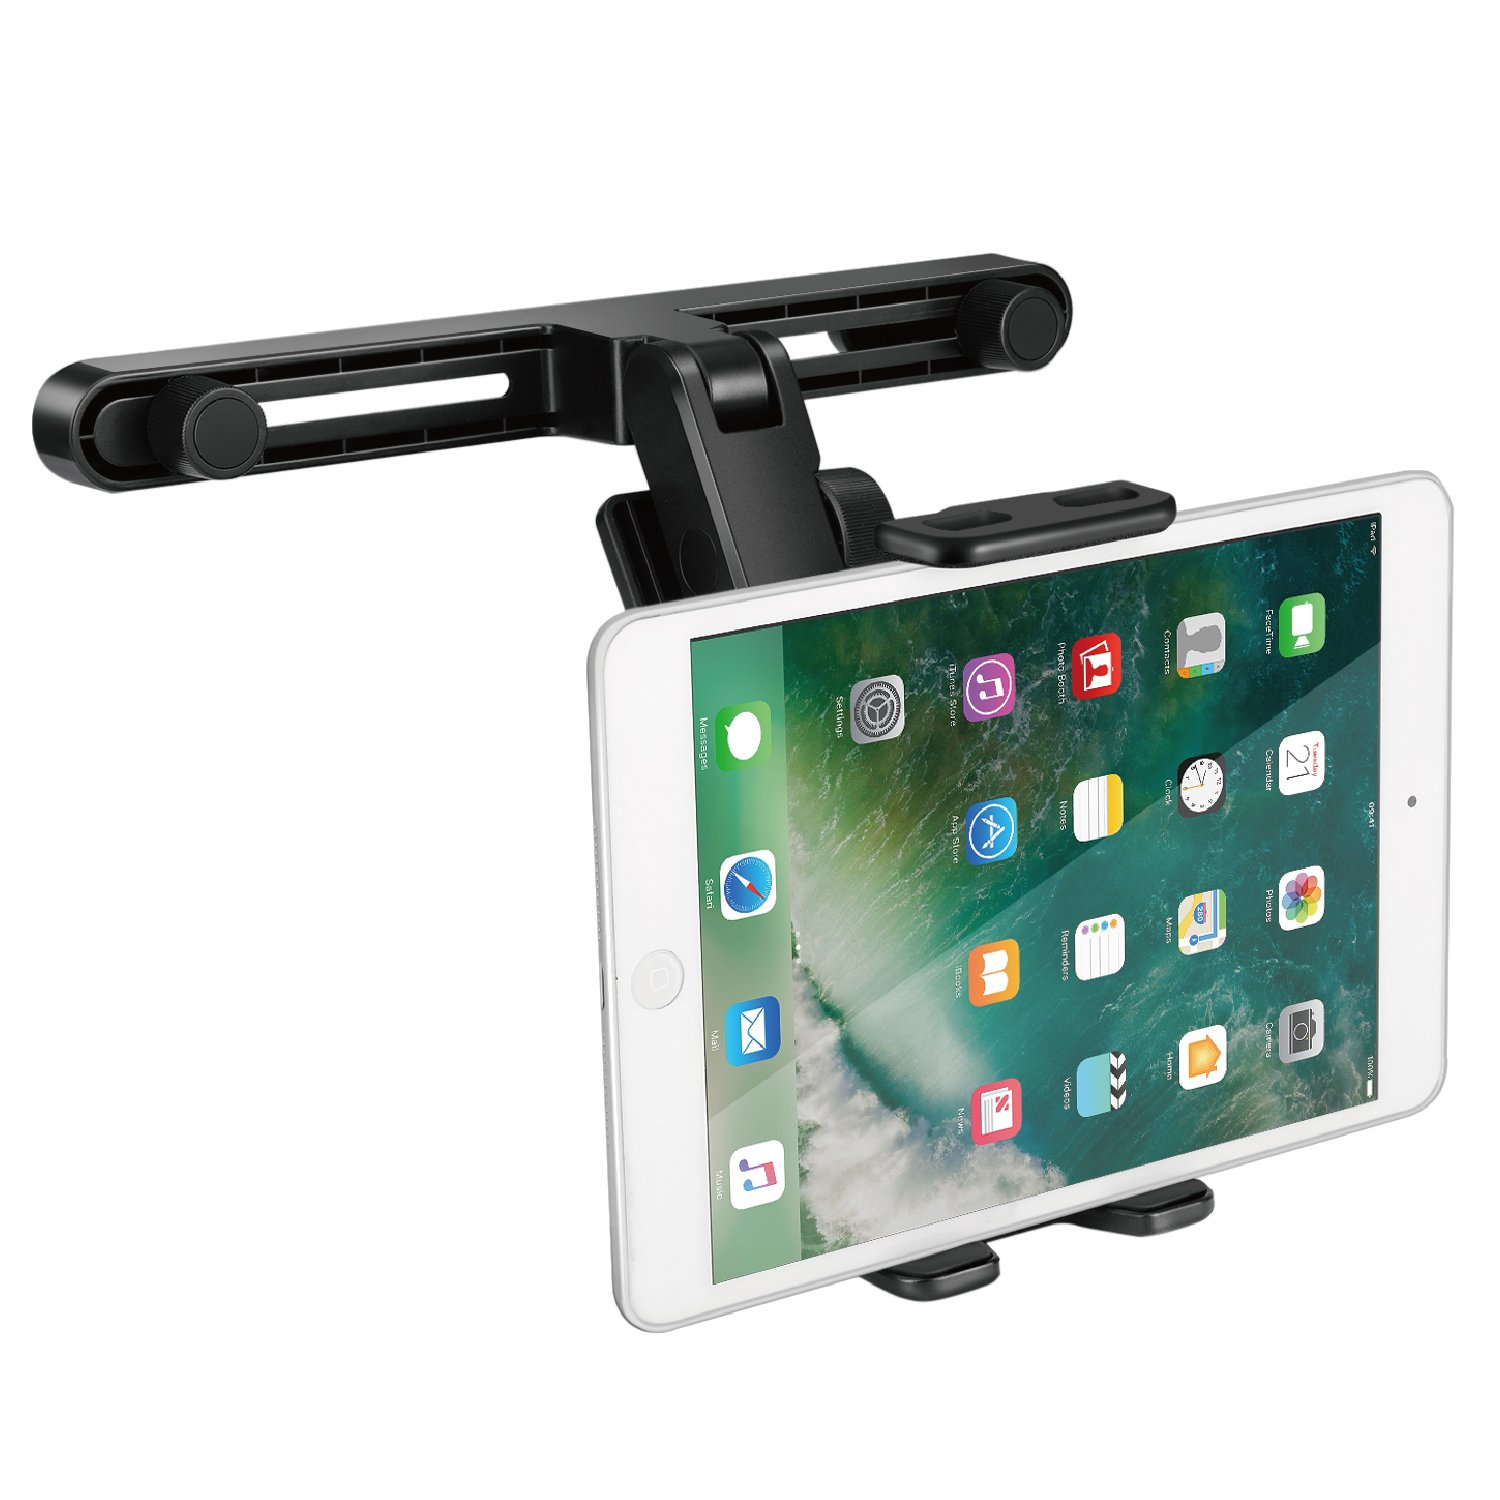 Samsung Galaxy Note 9 Note 8 S9 S9 Huawei OnePlus Garmin GPS 8+ 8//7 Universal Car Cup Smartphone Cradle Clamp w//Flexible Neck for Apple iPhone Xs//Xs Max//X TNP Cup Holder Phone Mount